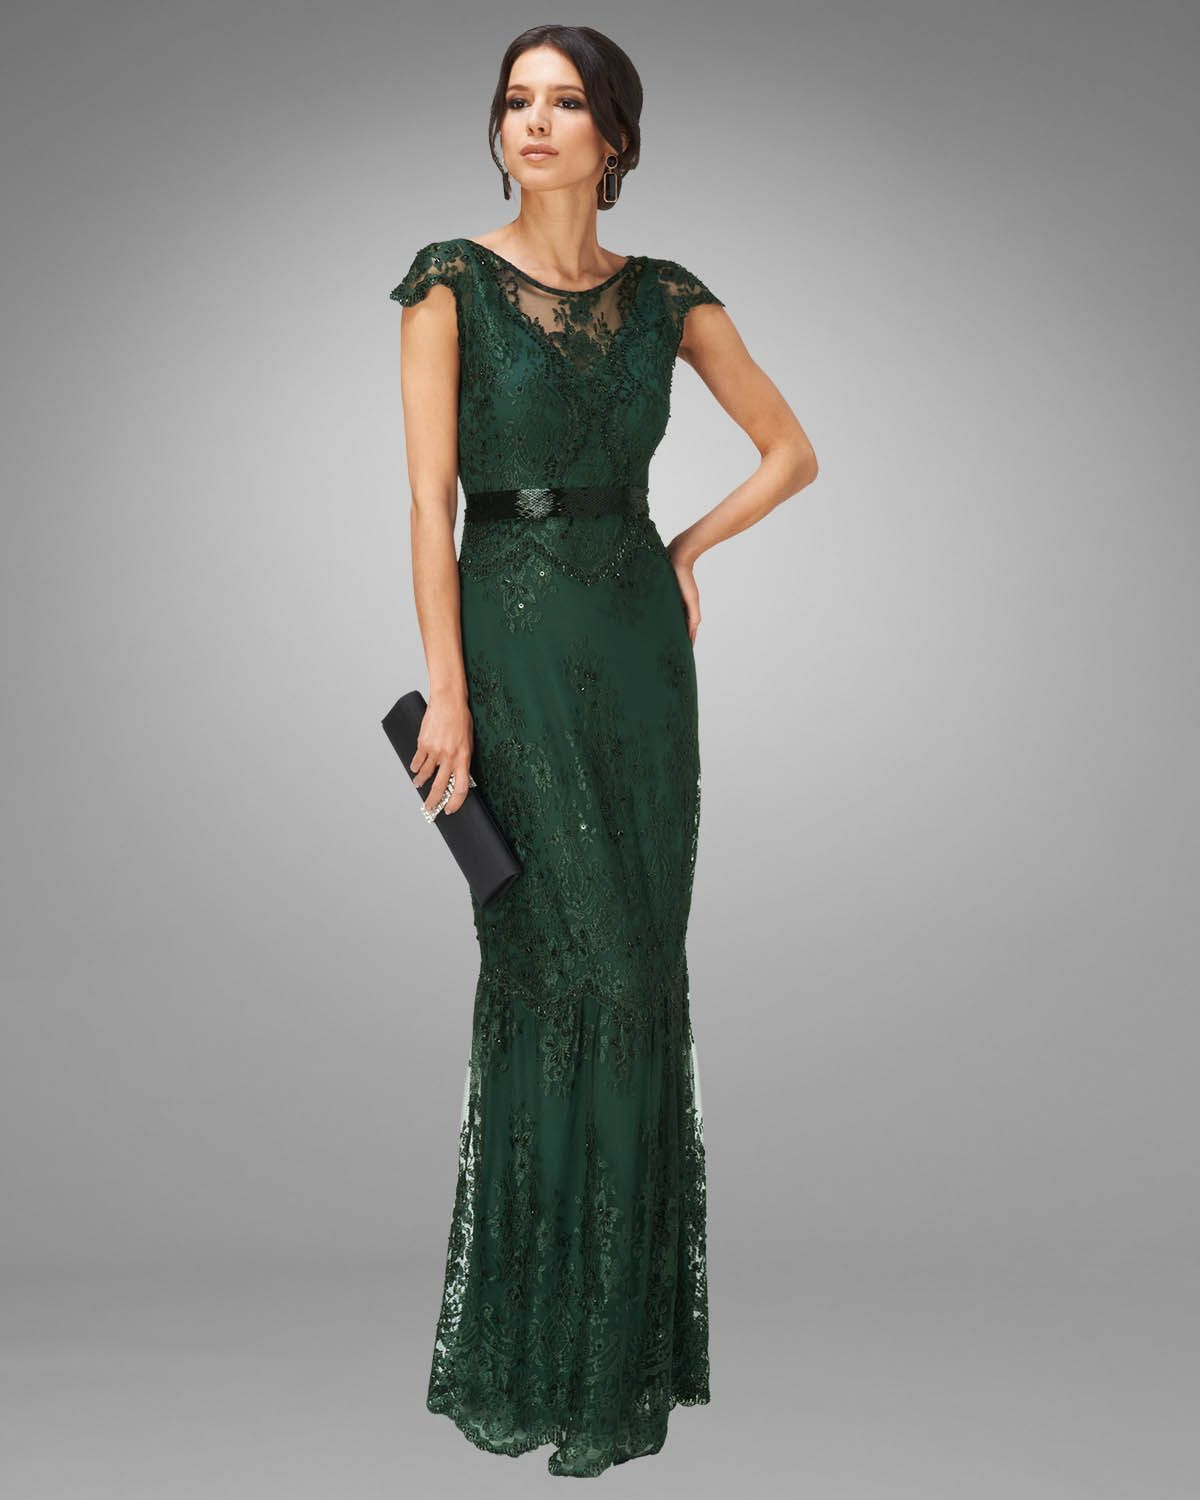 Emerald wedding dress. Could this be any more romantic and graceful ...